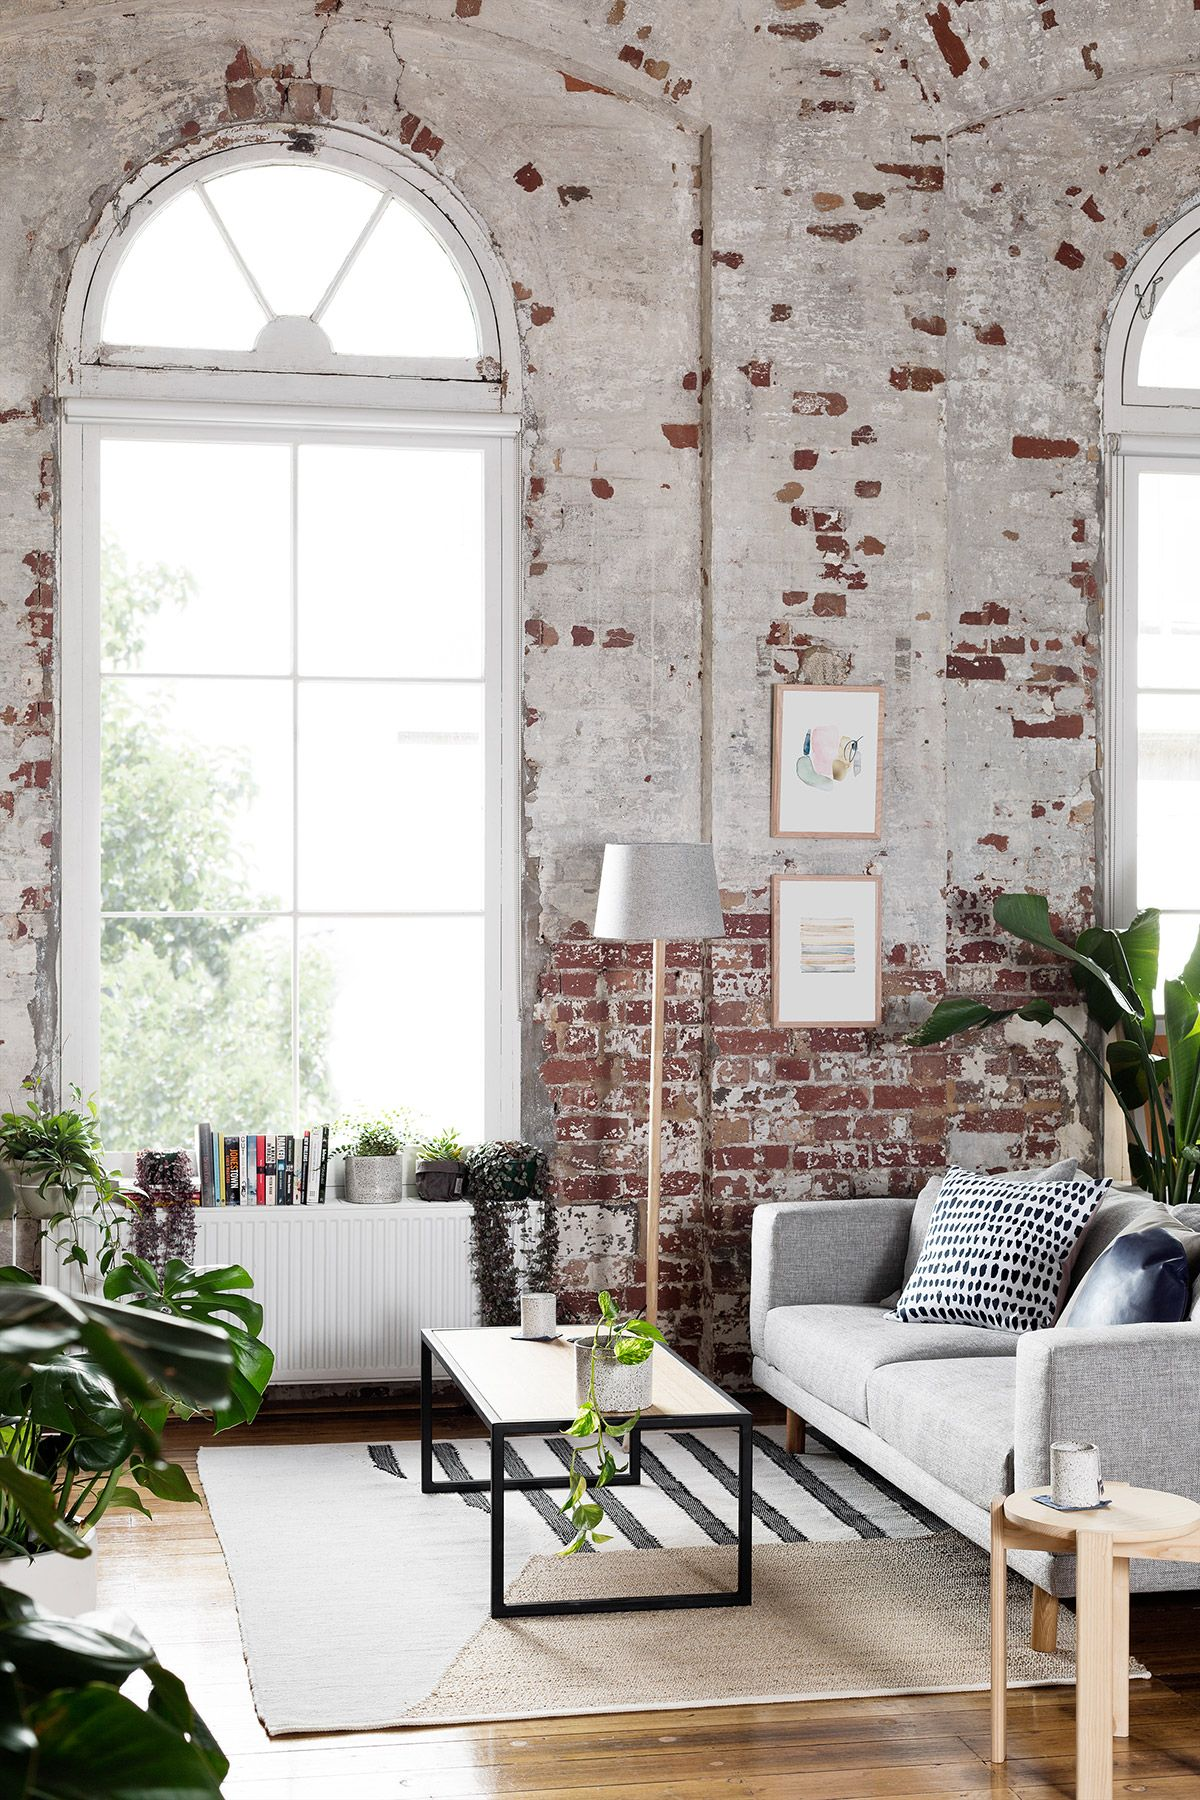 Gravity Home: Warehouse Apartment Hunting for George   WOHNZIMMER ...